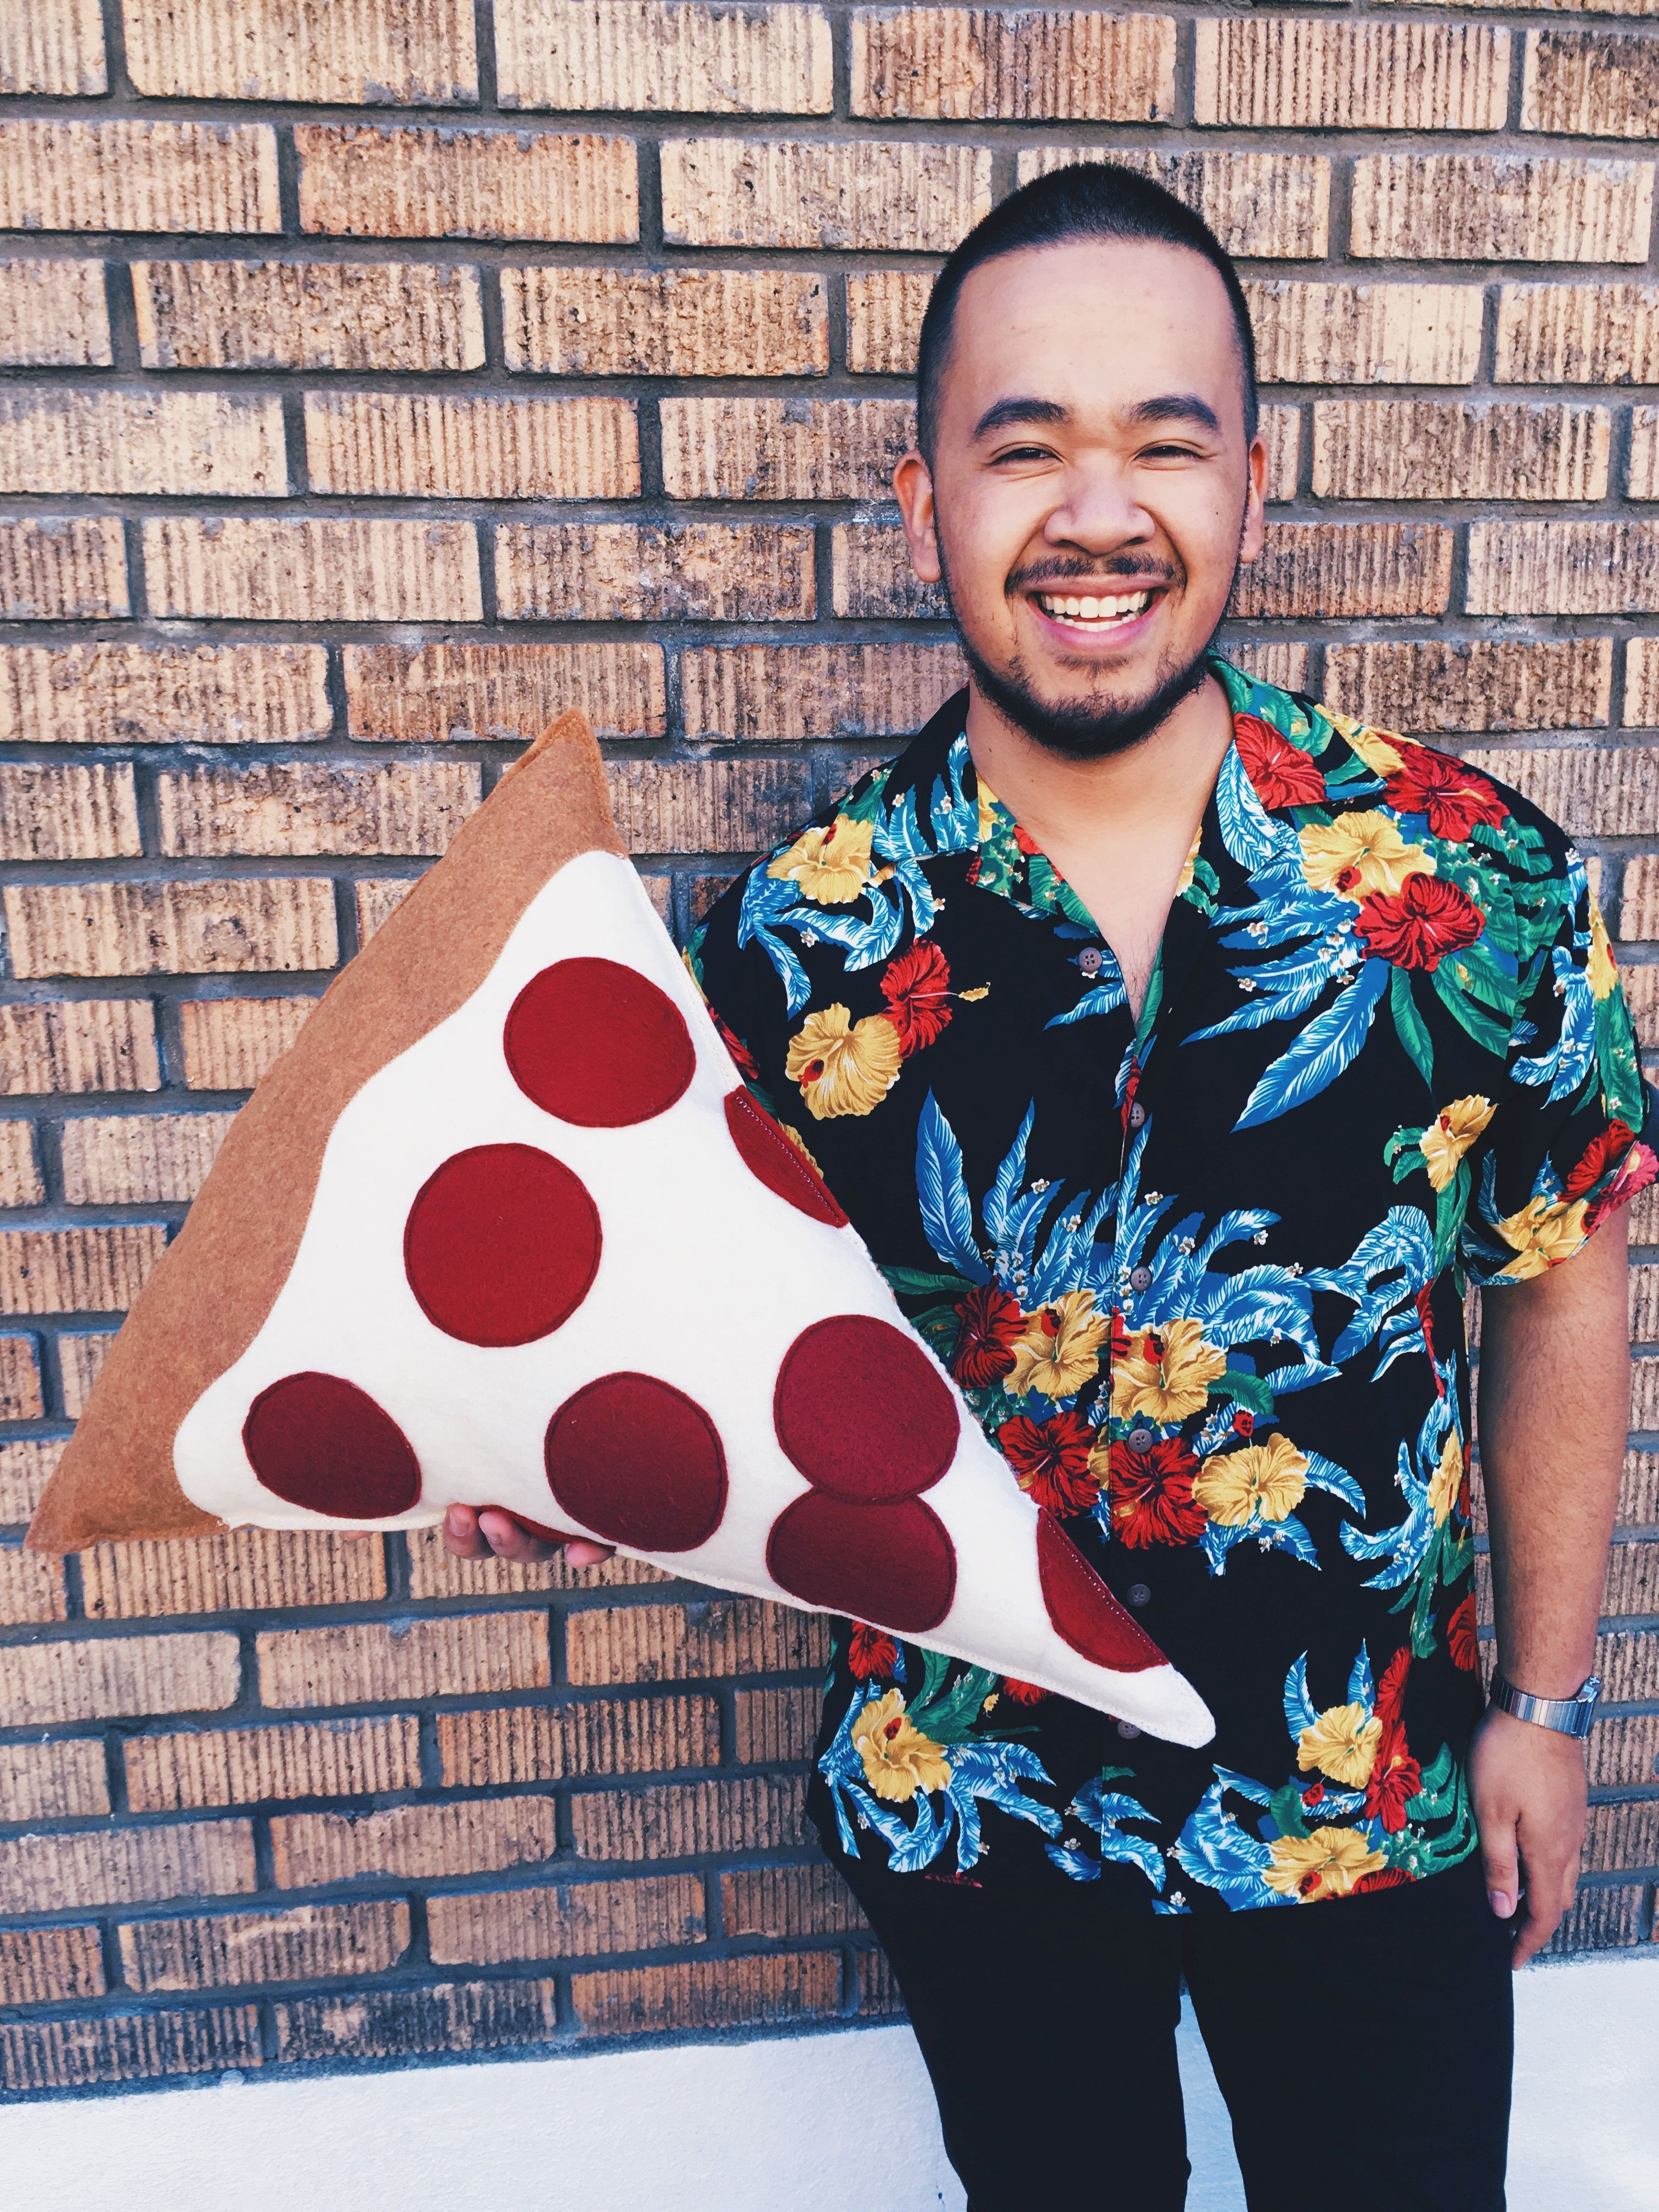 You want *a pizza* this #EmployeeStyle? 🍕 #BuffaloExchange